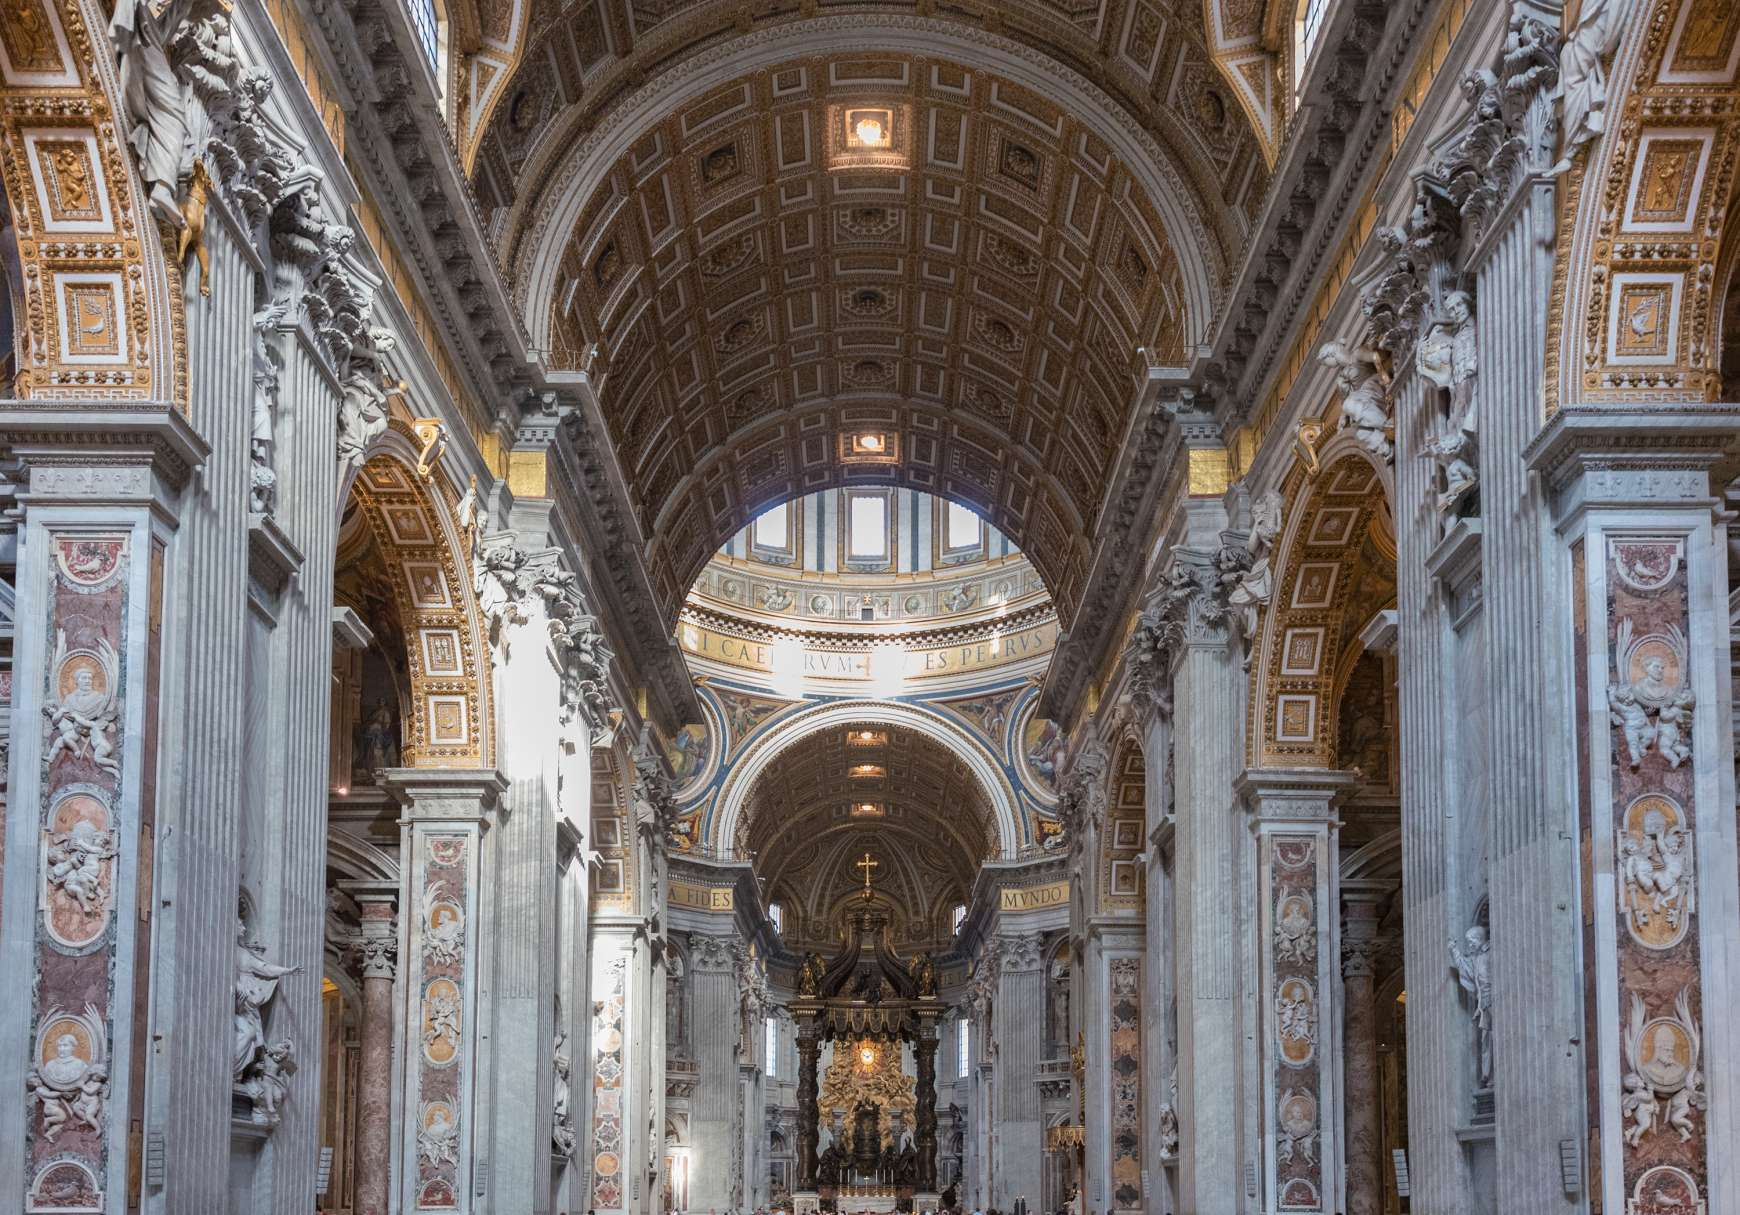 View of walls and vaulted archways of St. Peter's Basilica in Rome